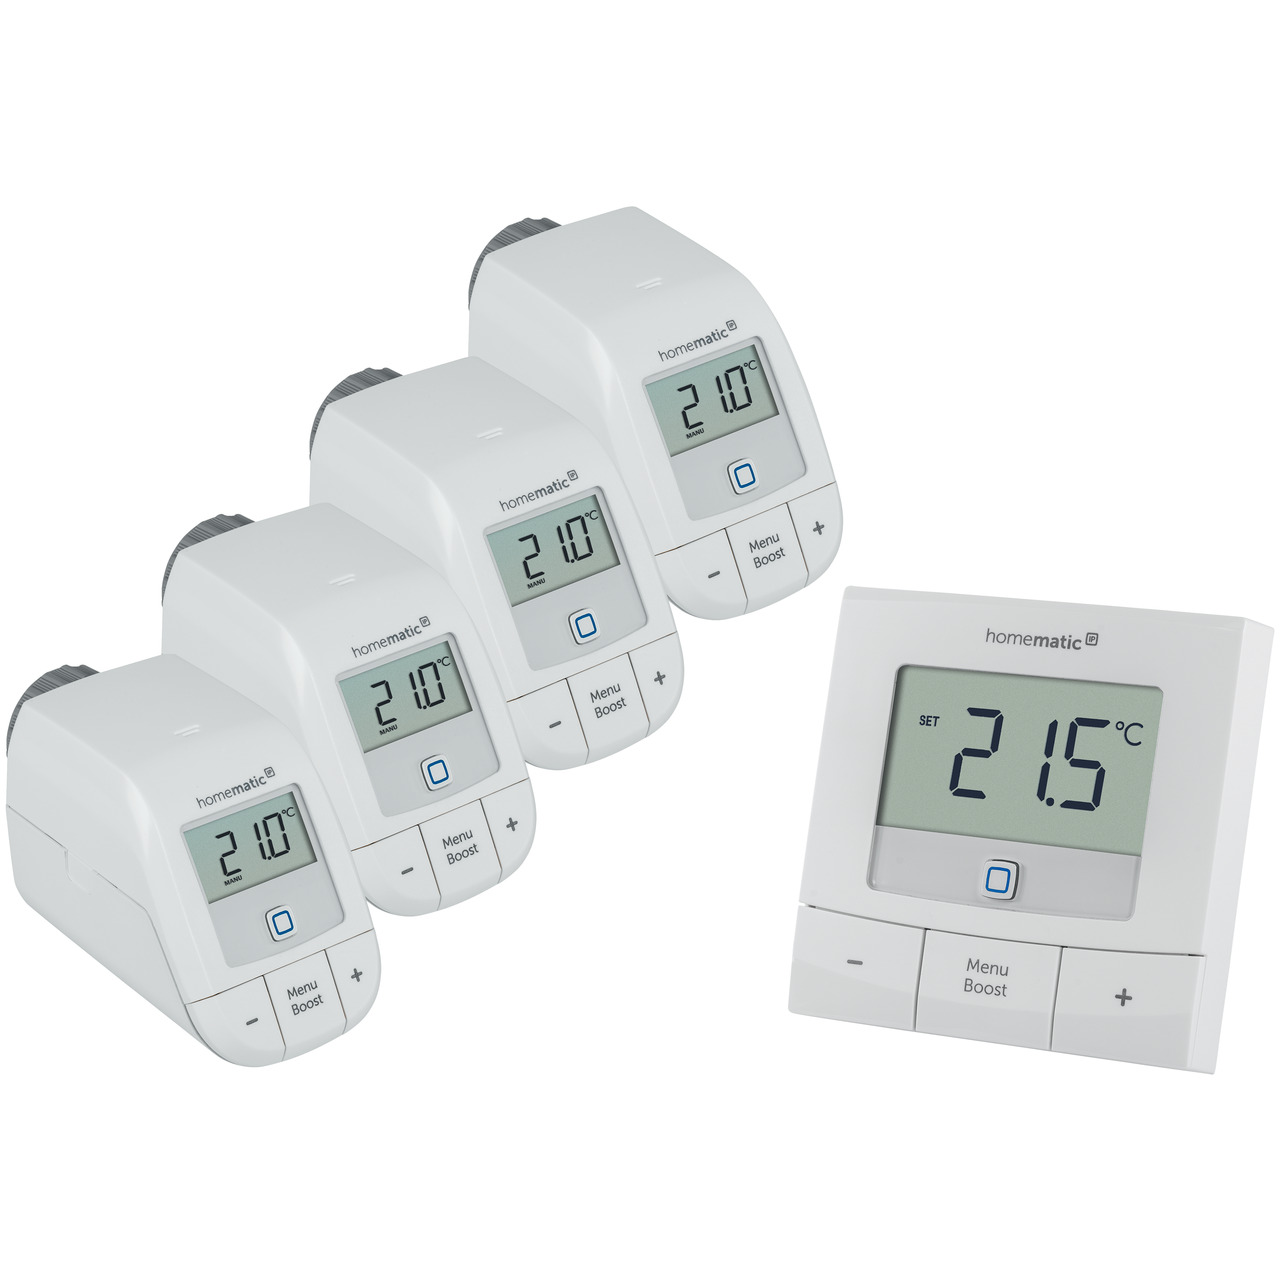 Homematic IP Smart Home Set Heizen Basic L mit 4x Heizkörperthermostat und 1x Wandthermostat